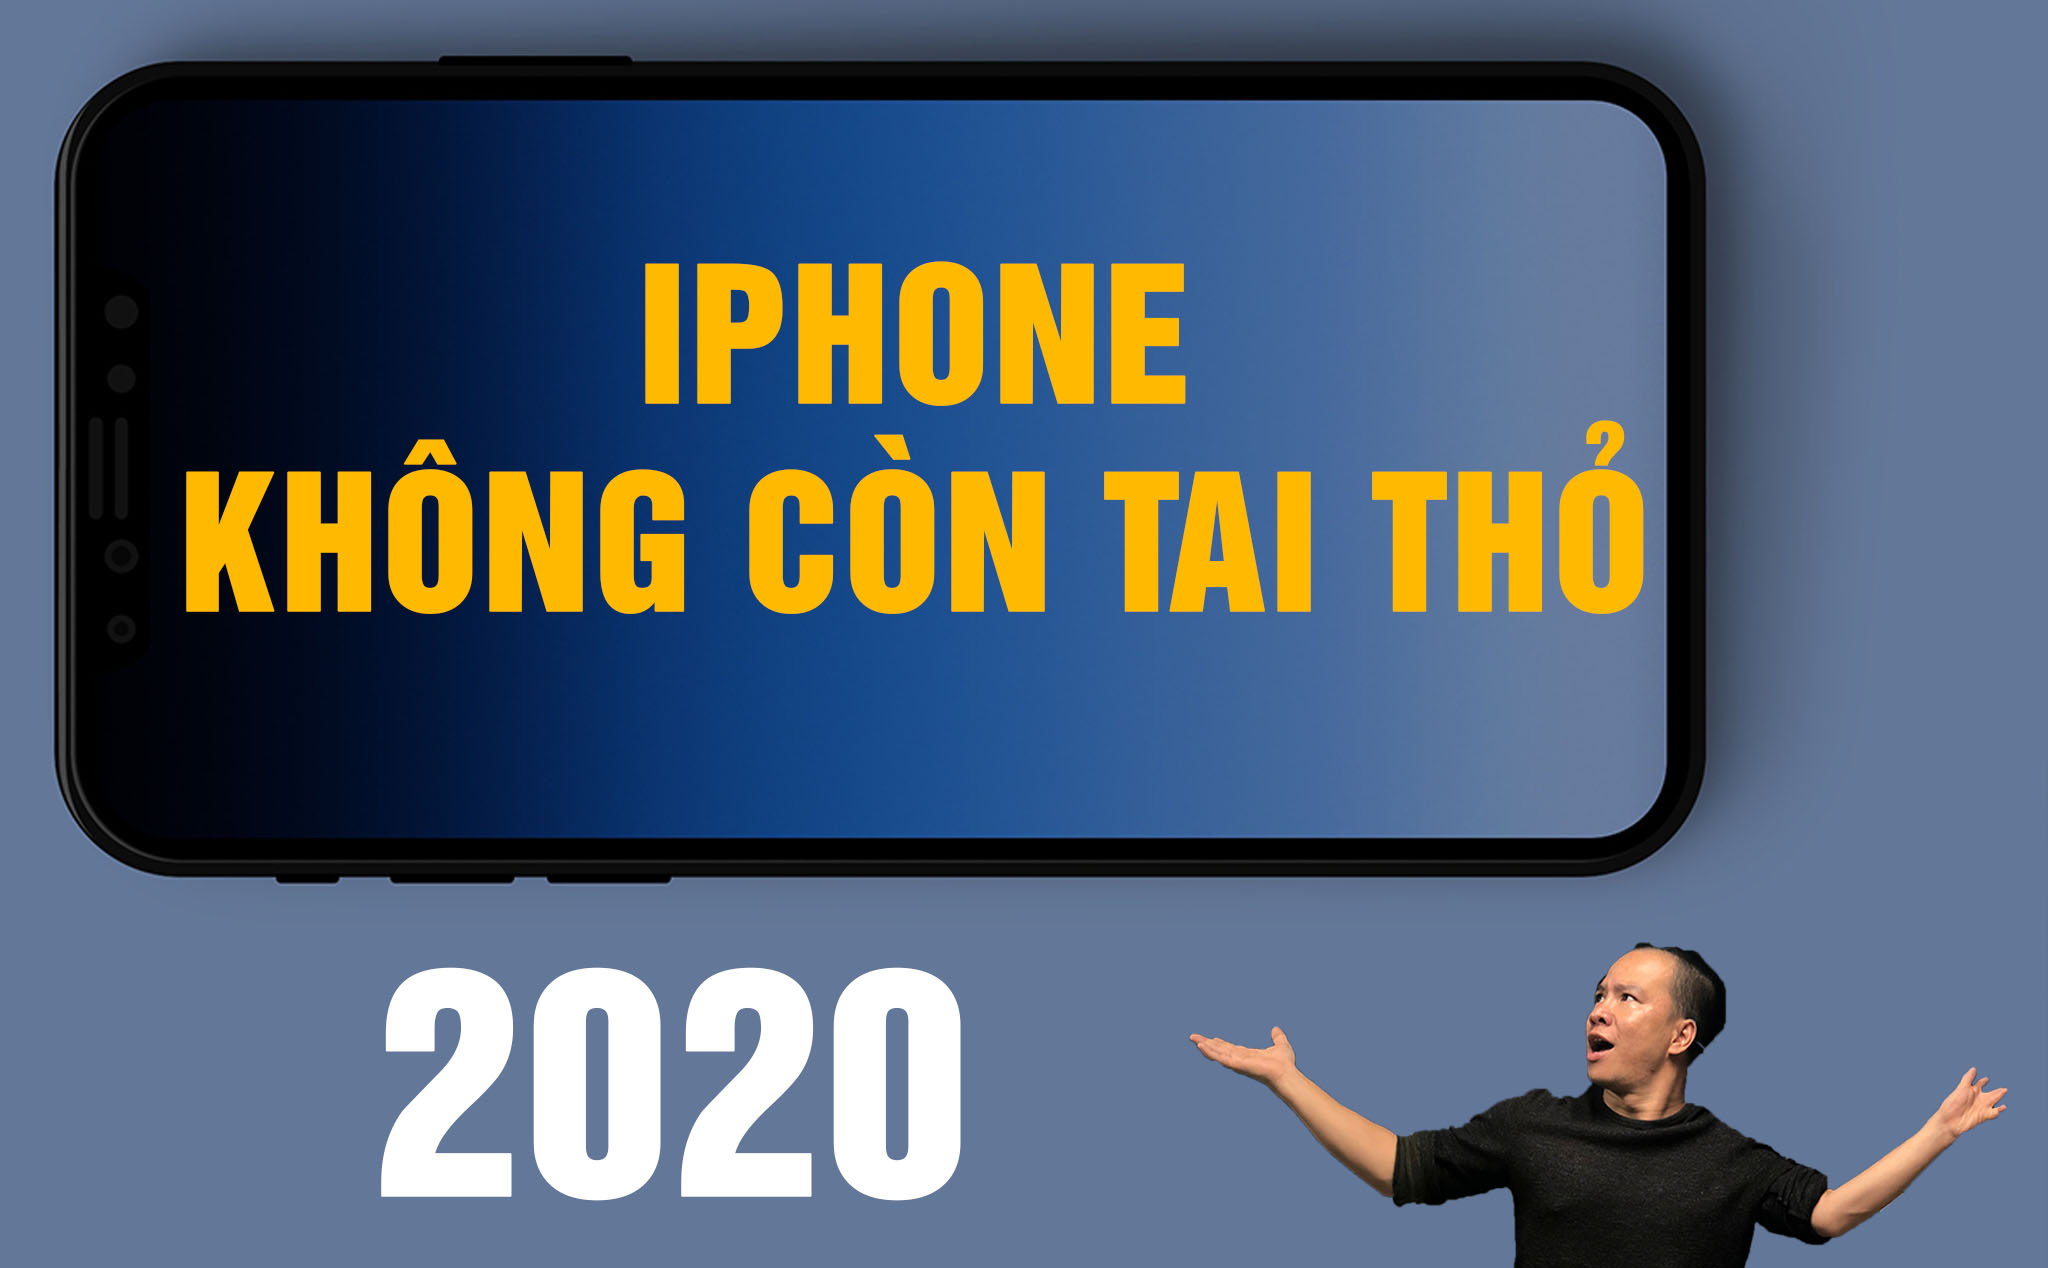 [Video] iPhone 2020 no rabbit ears, what do you think?